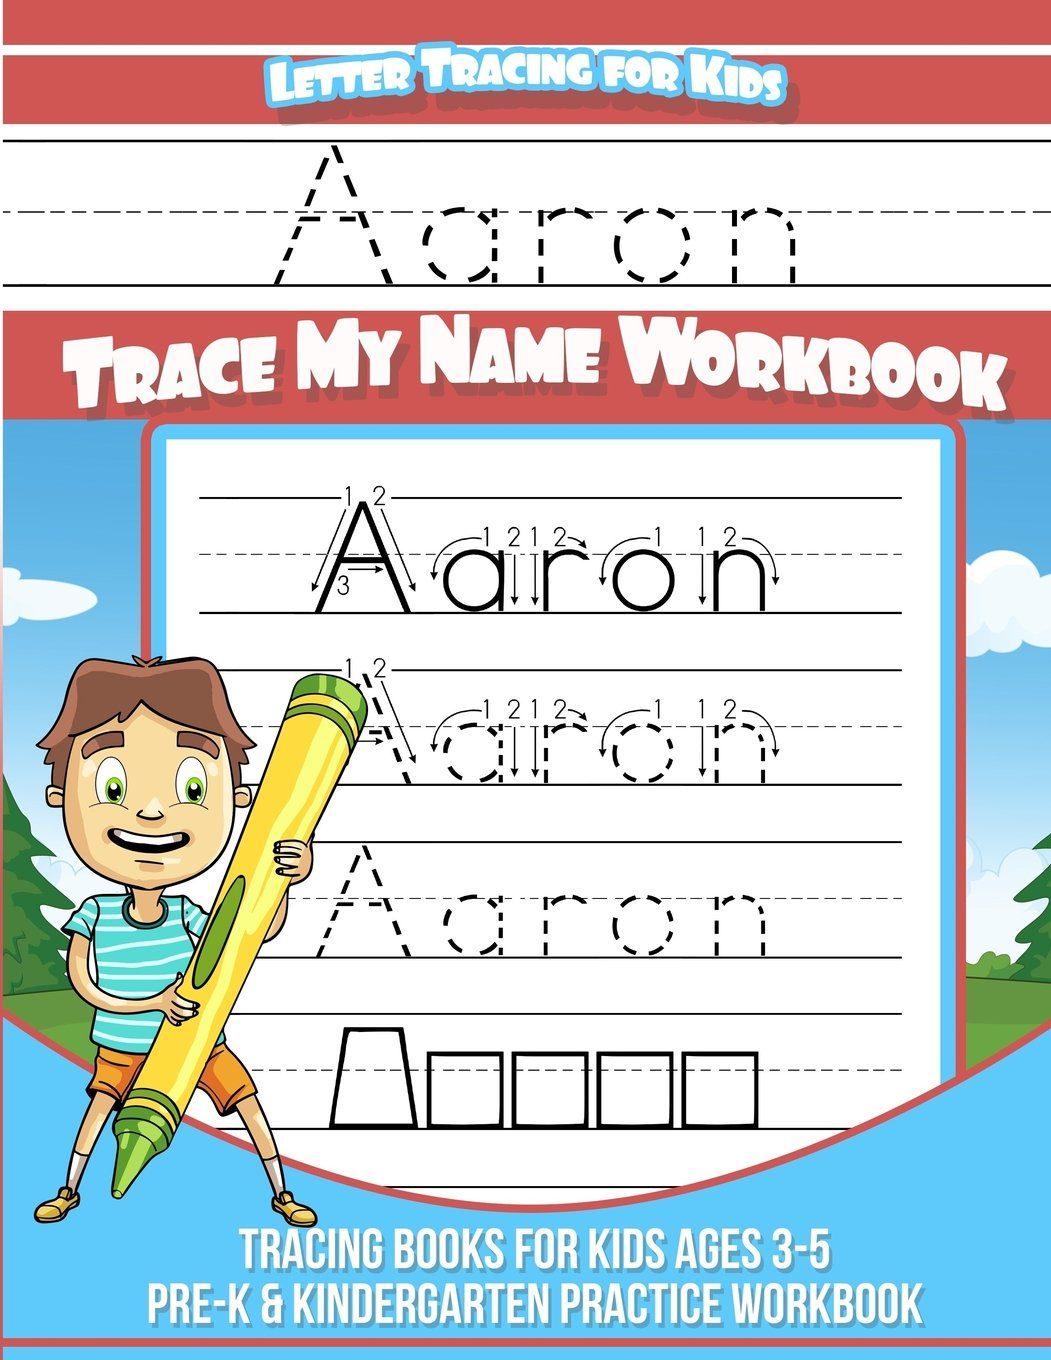 Aaron Letter Tracing for Kids Trace my Name Workbook: Tracing Books for Kids ages 3 - 5 Pre-K & Kindergarten Practice Workbook pdf epub